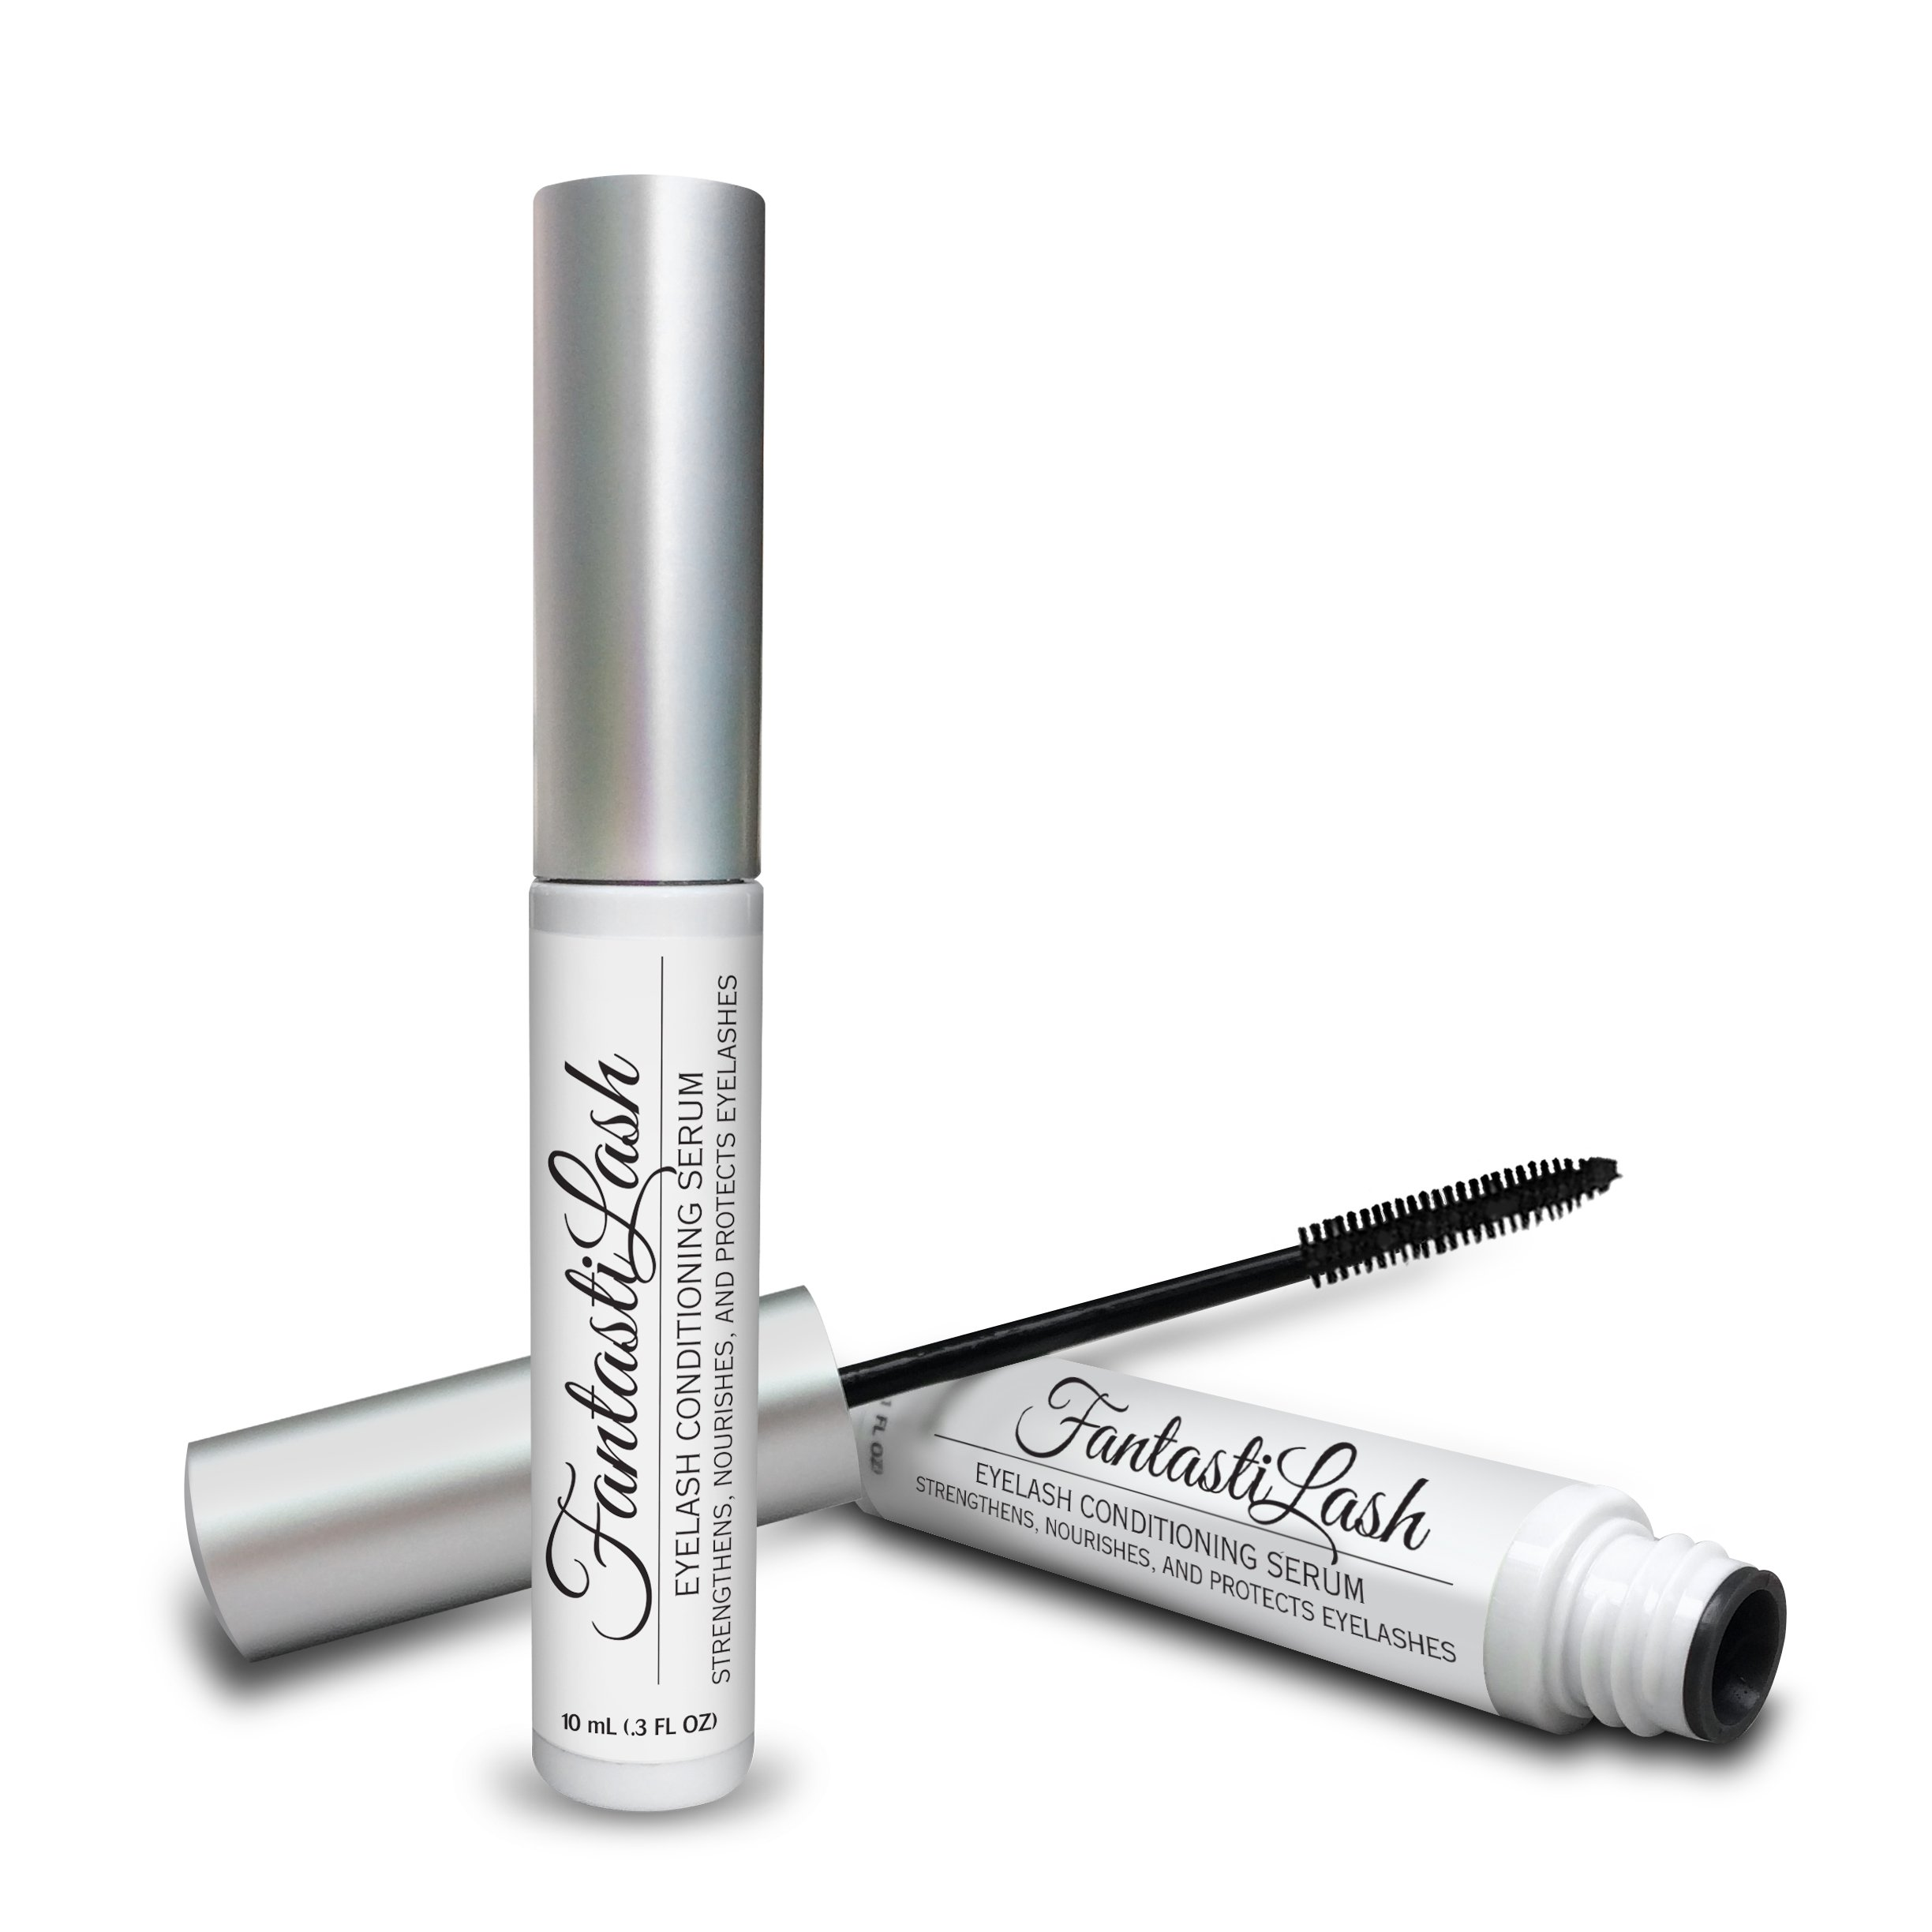 Hairgenics Pronexa FantastiLash – Eyelash Conditioner & Brow Conditioning Serum with Castor Oil Strengthens, Nourishes and Protects for Perfect Eyelashes and Brows.